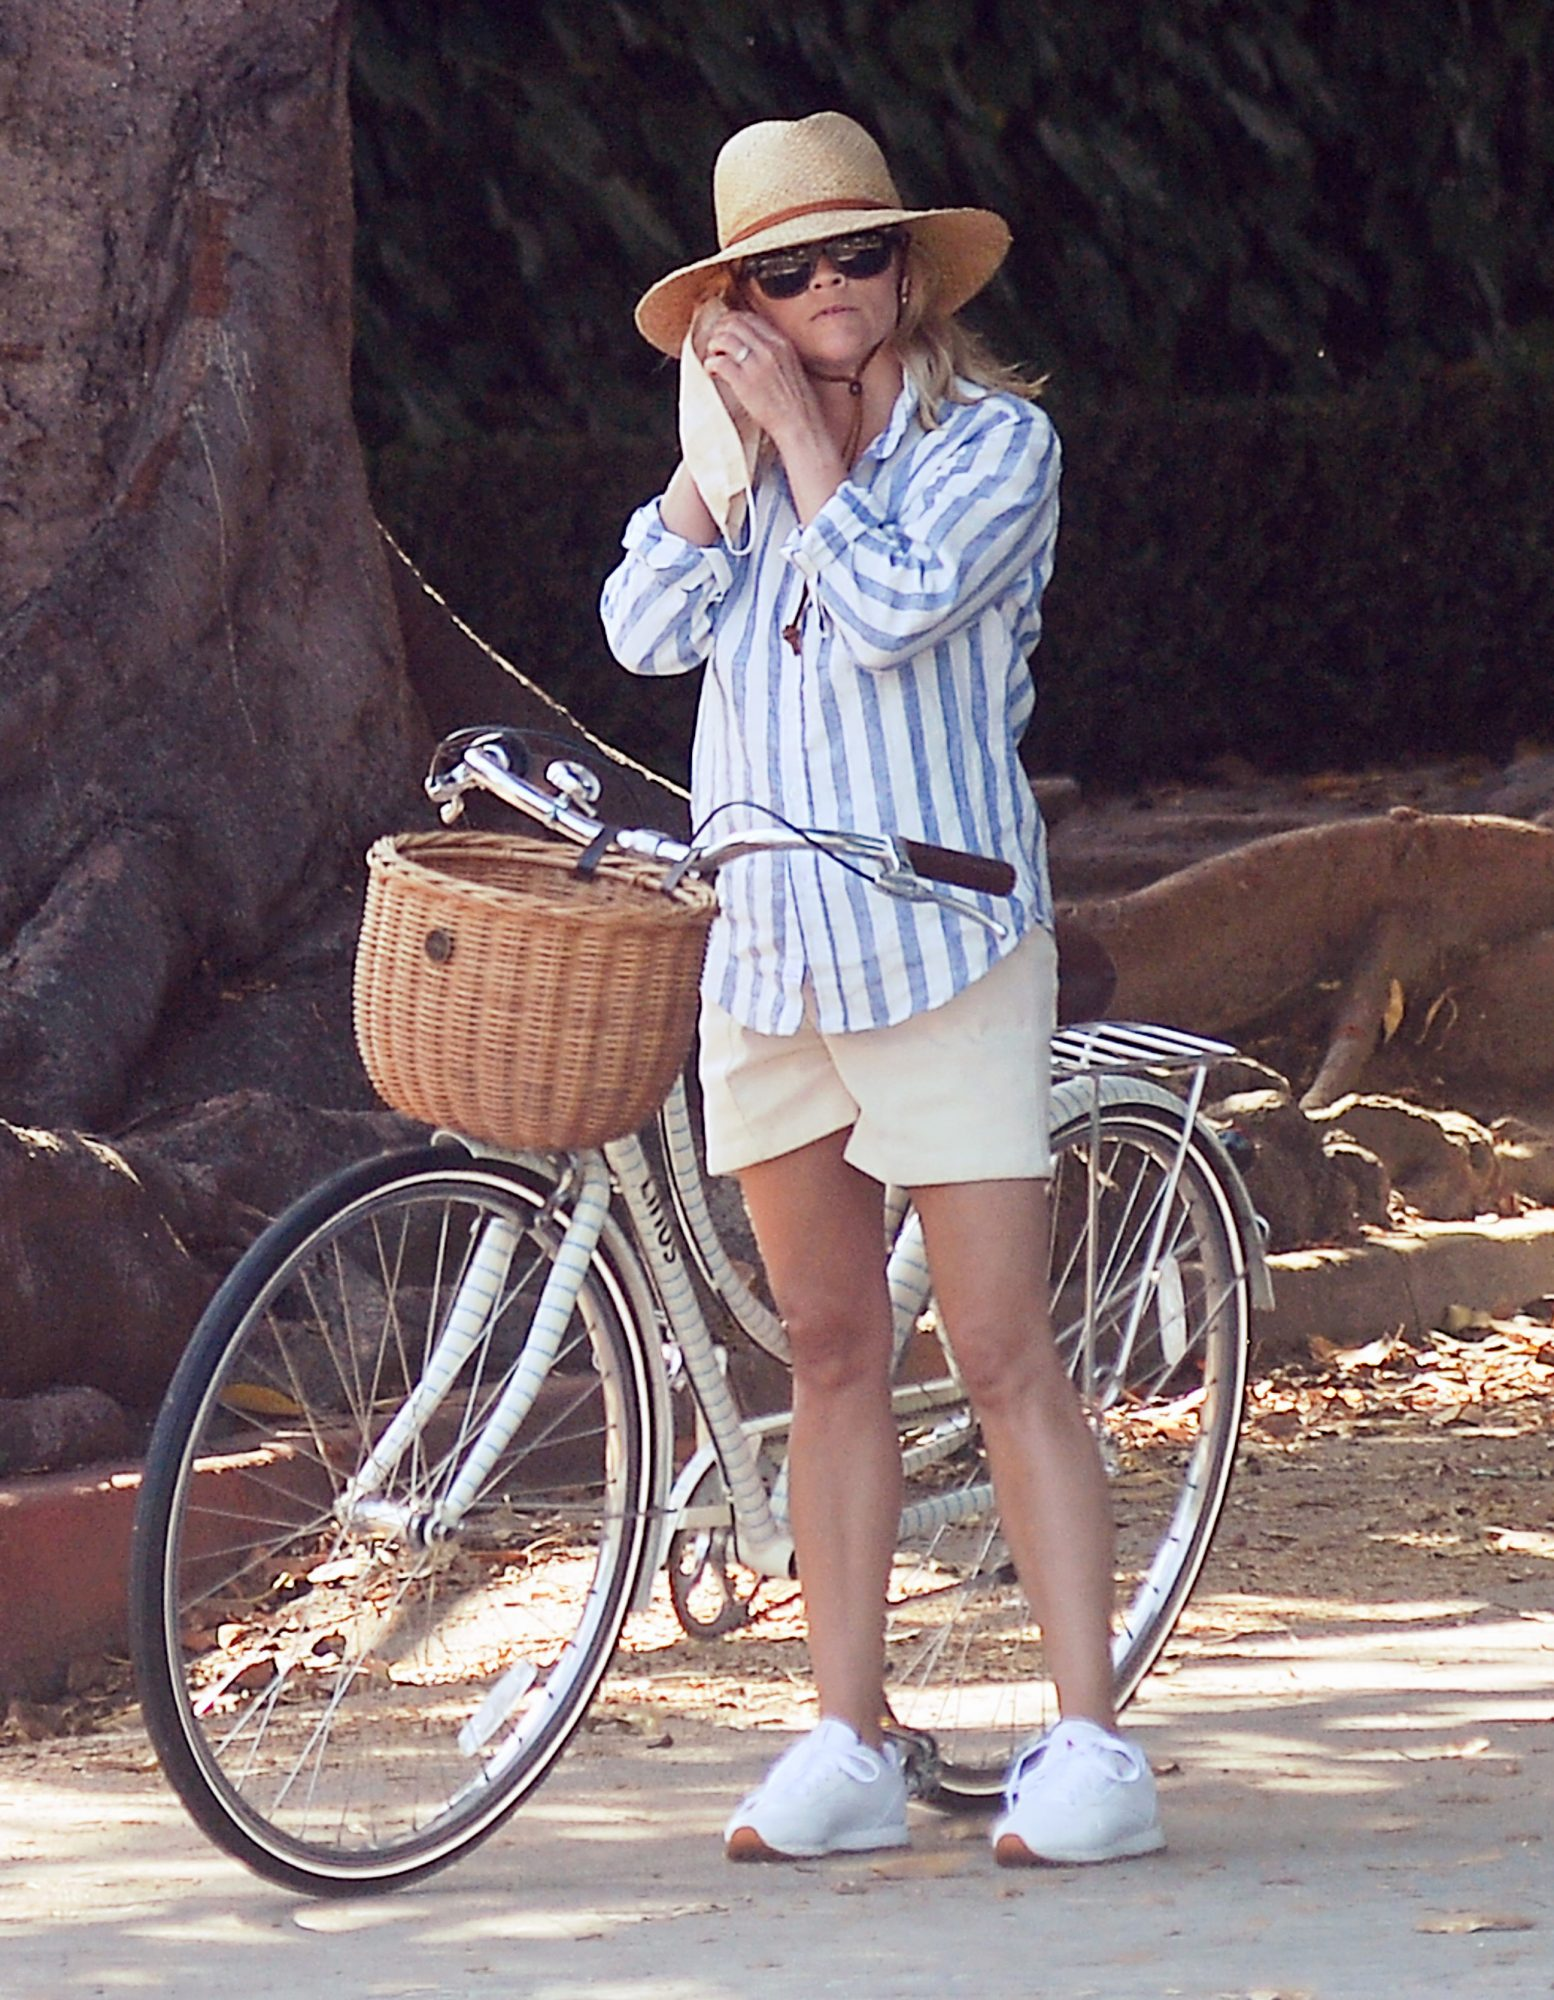 Reese Witherspoon and Jim Toth Head Out for a Bike Ride on Father's Day in Los Angeles